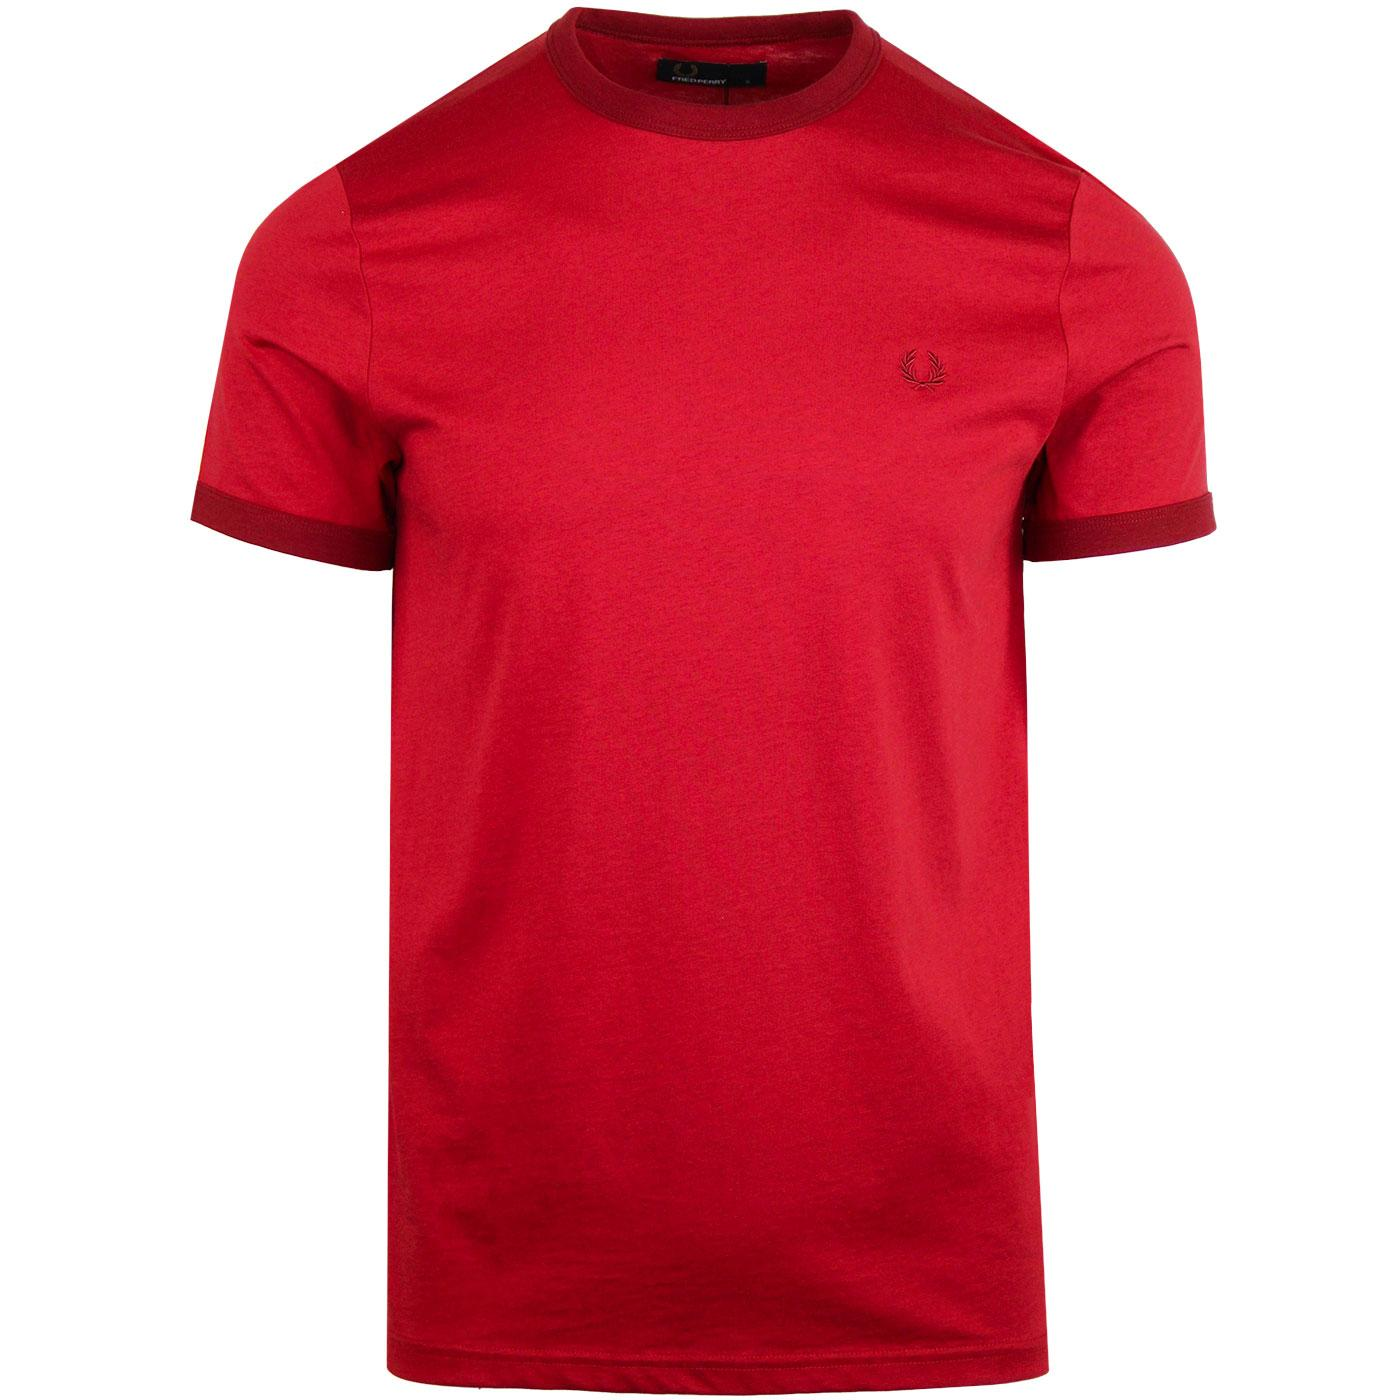 FRED PERRY Retro Mod Crew Neck Ringer T-shirt RED